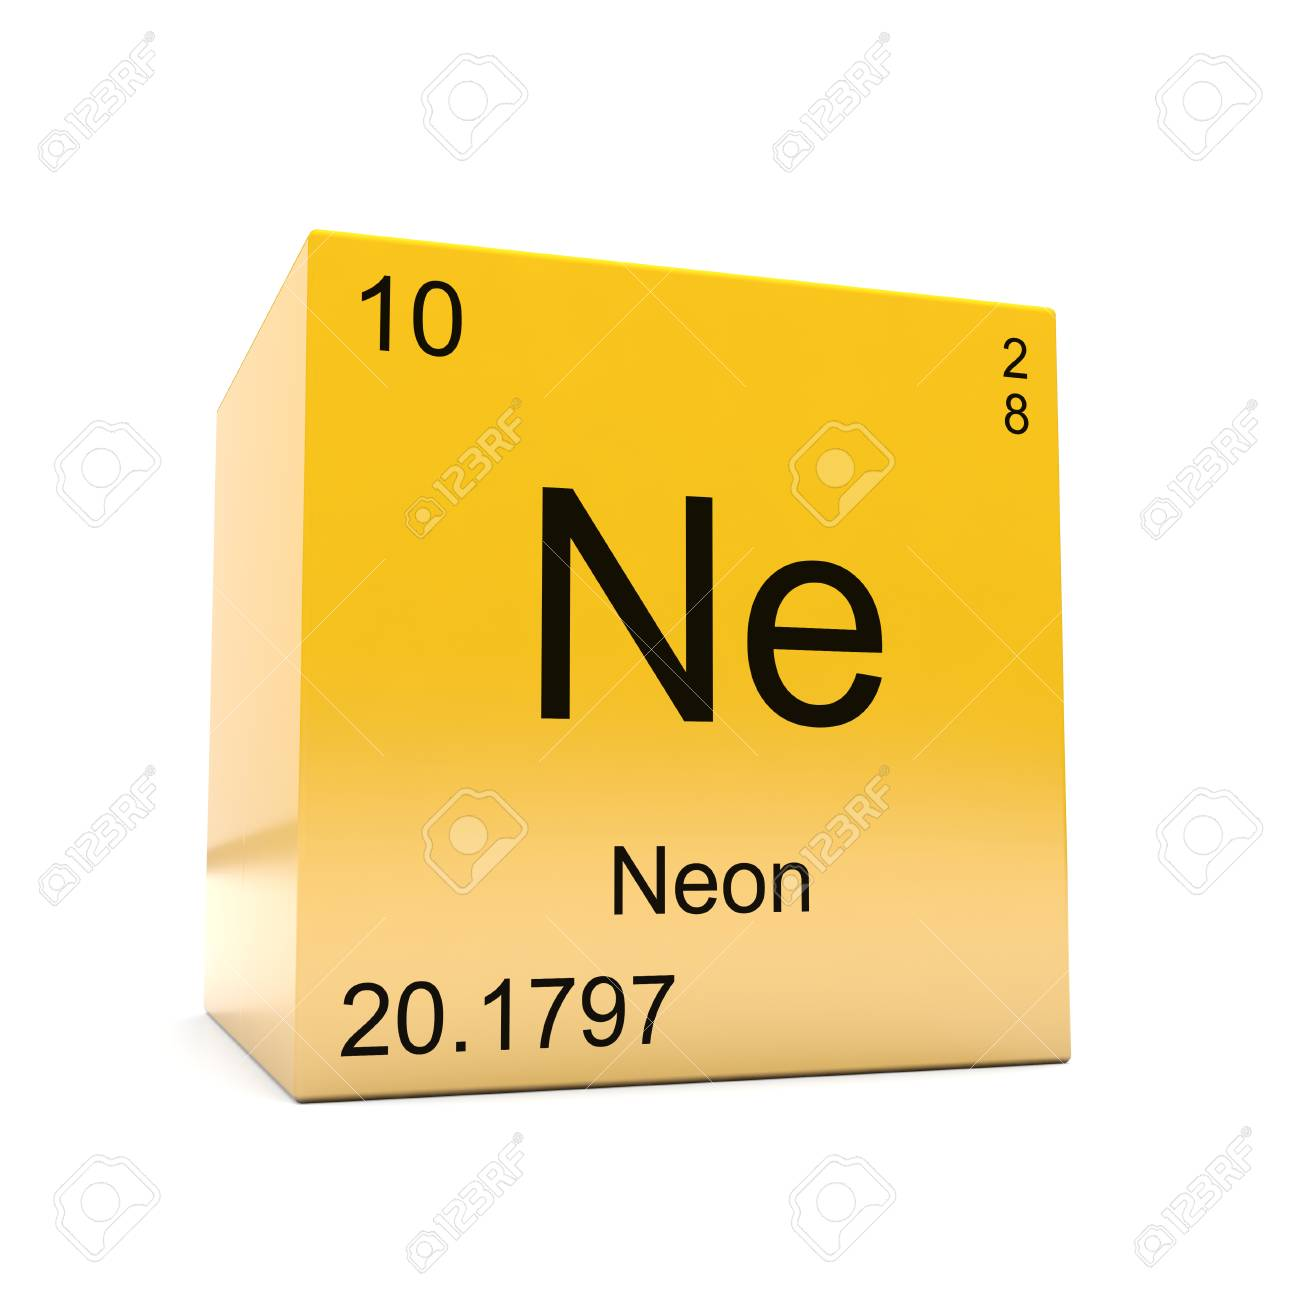 Neon Chemical Element Symbol From The Periodic Table Displayed On Glossy  Yellow Cube Stock Photo